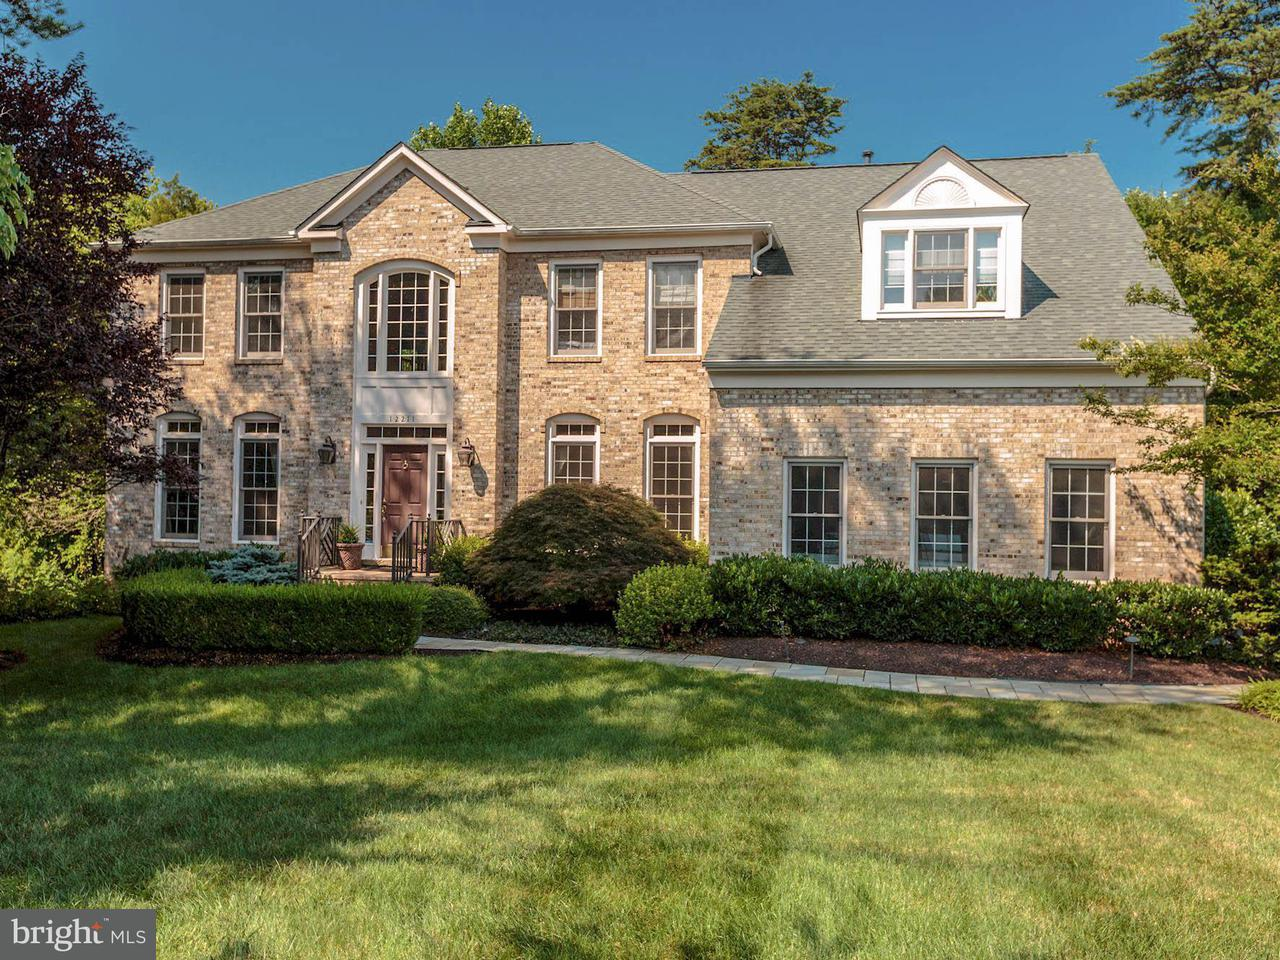 Maison unifamiliale pour l Vente à 12211 JONATHONS GLEN WAY 12211 JONATHONS GLEN WAY Herndon, Virginia 20170 États-Unis